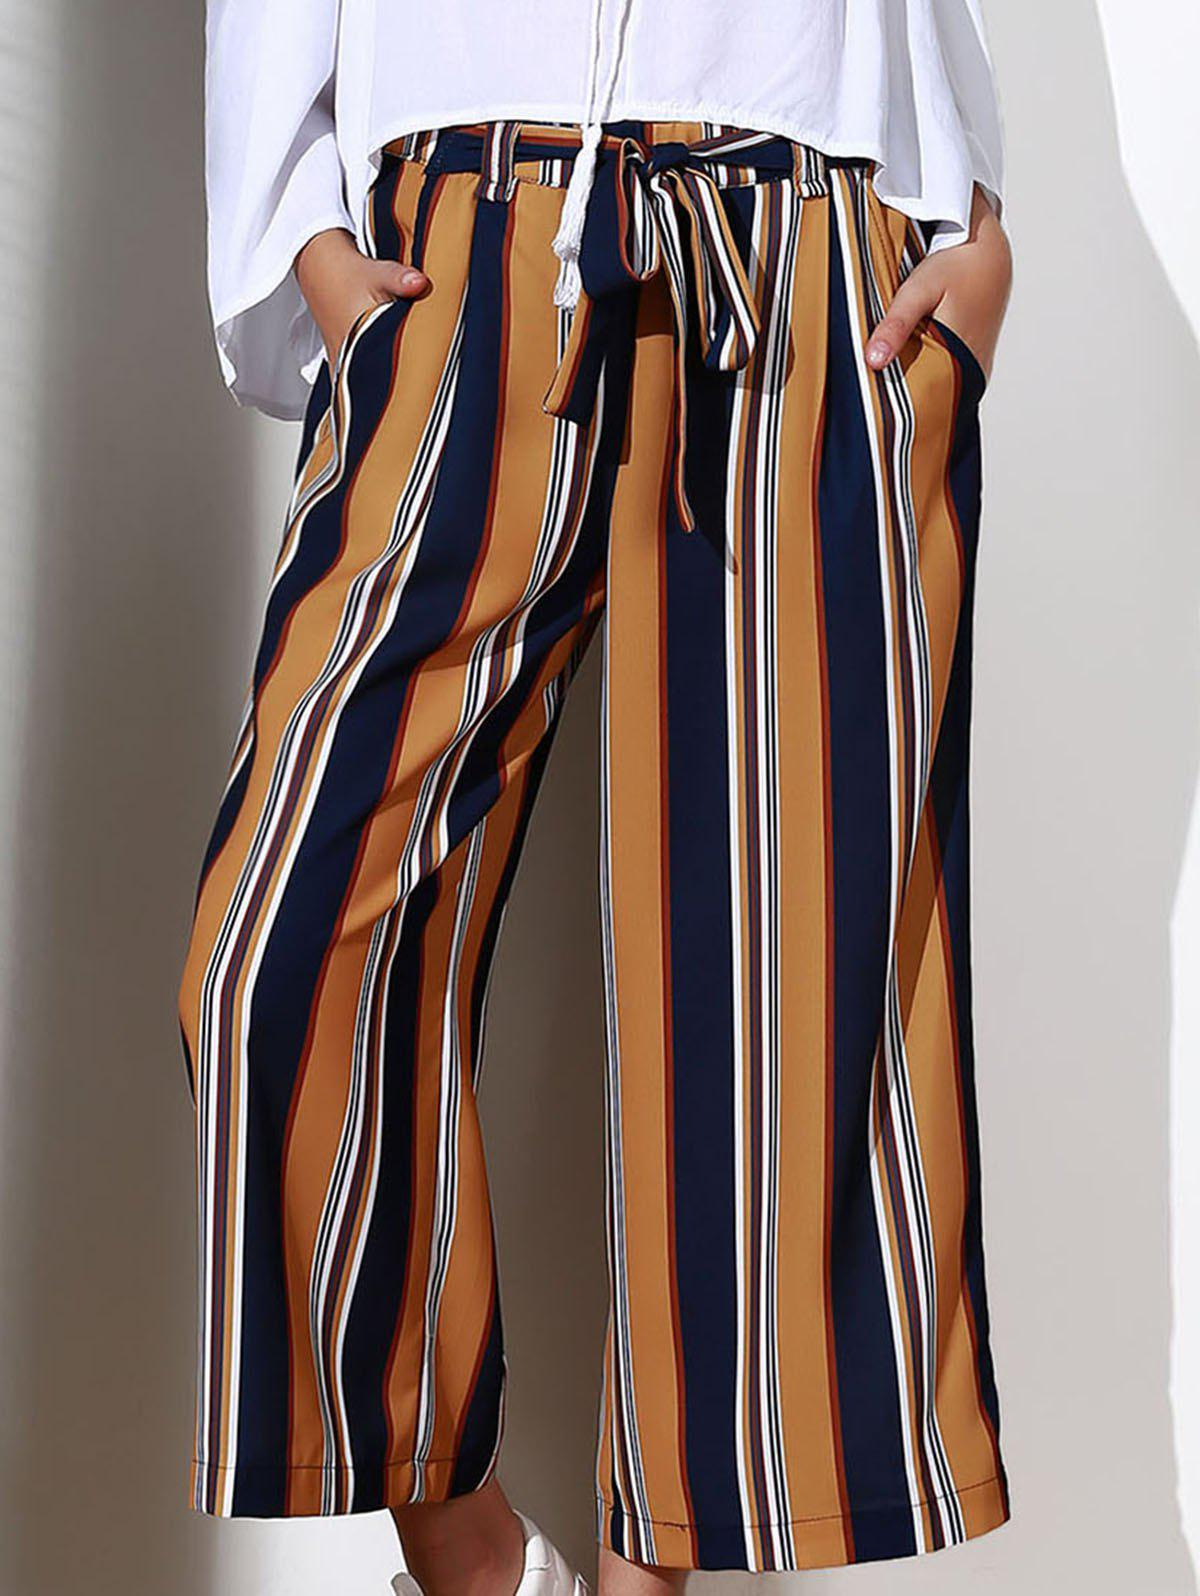 Outfit Chic High-Waisted Striped Pocket Design Women's Cropped Pants